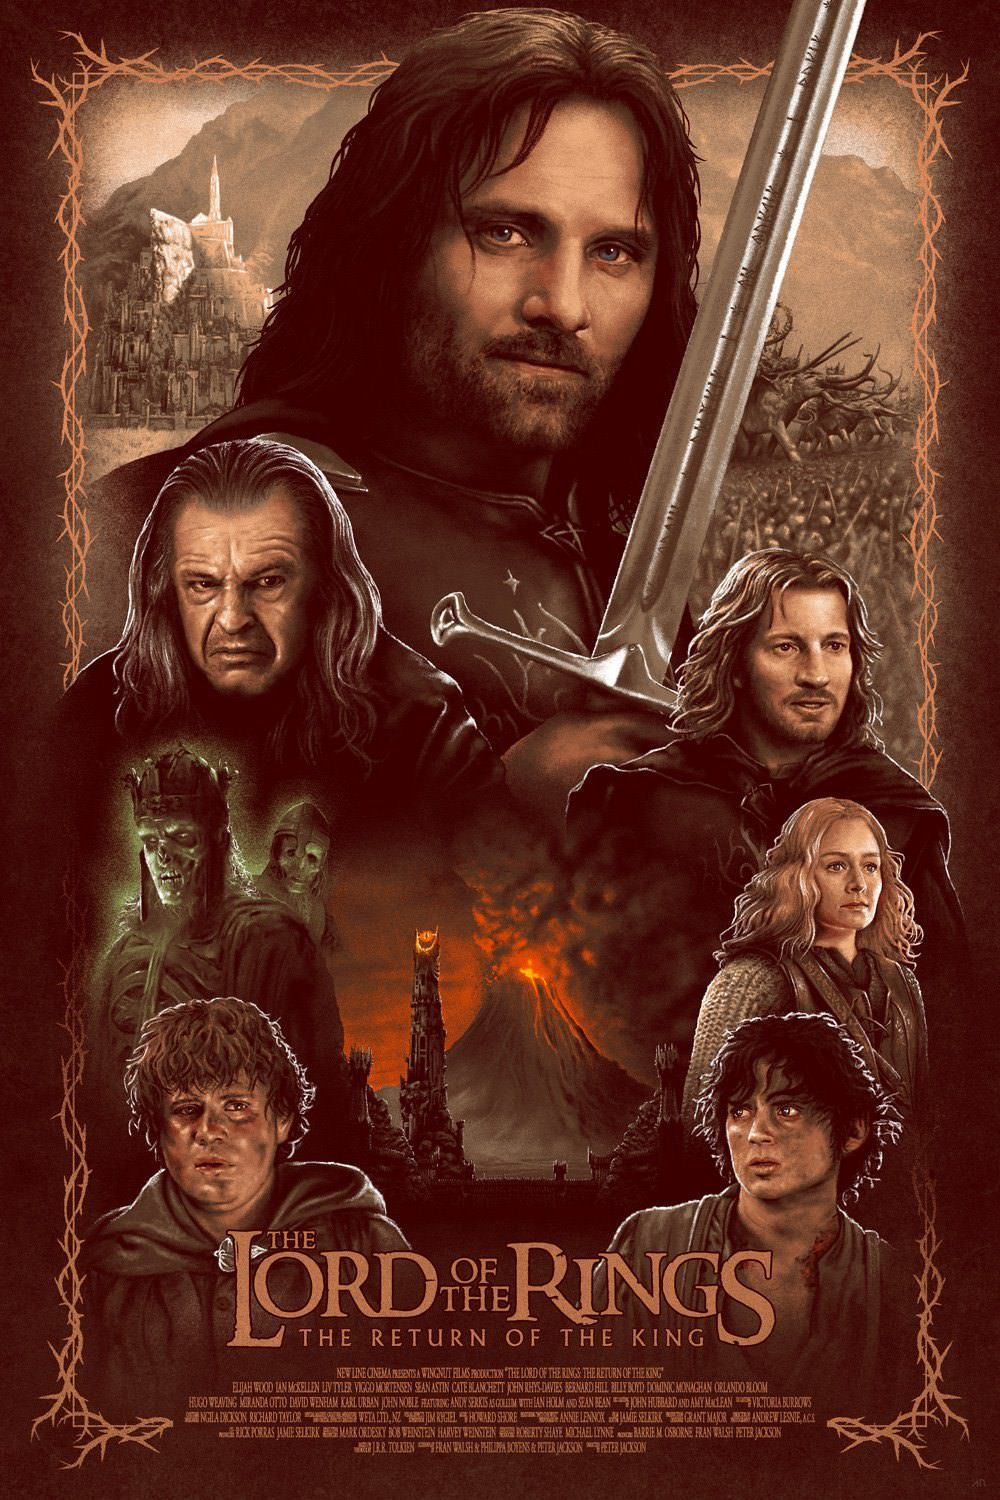 The Lord Of The Rings The Return Of The King 2003 1000 X 1500 Orta Dunya Poster Lotr